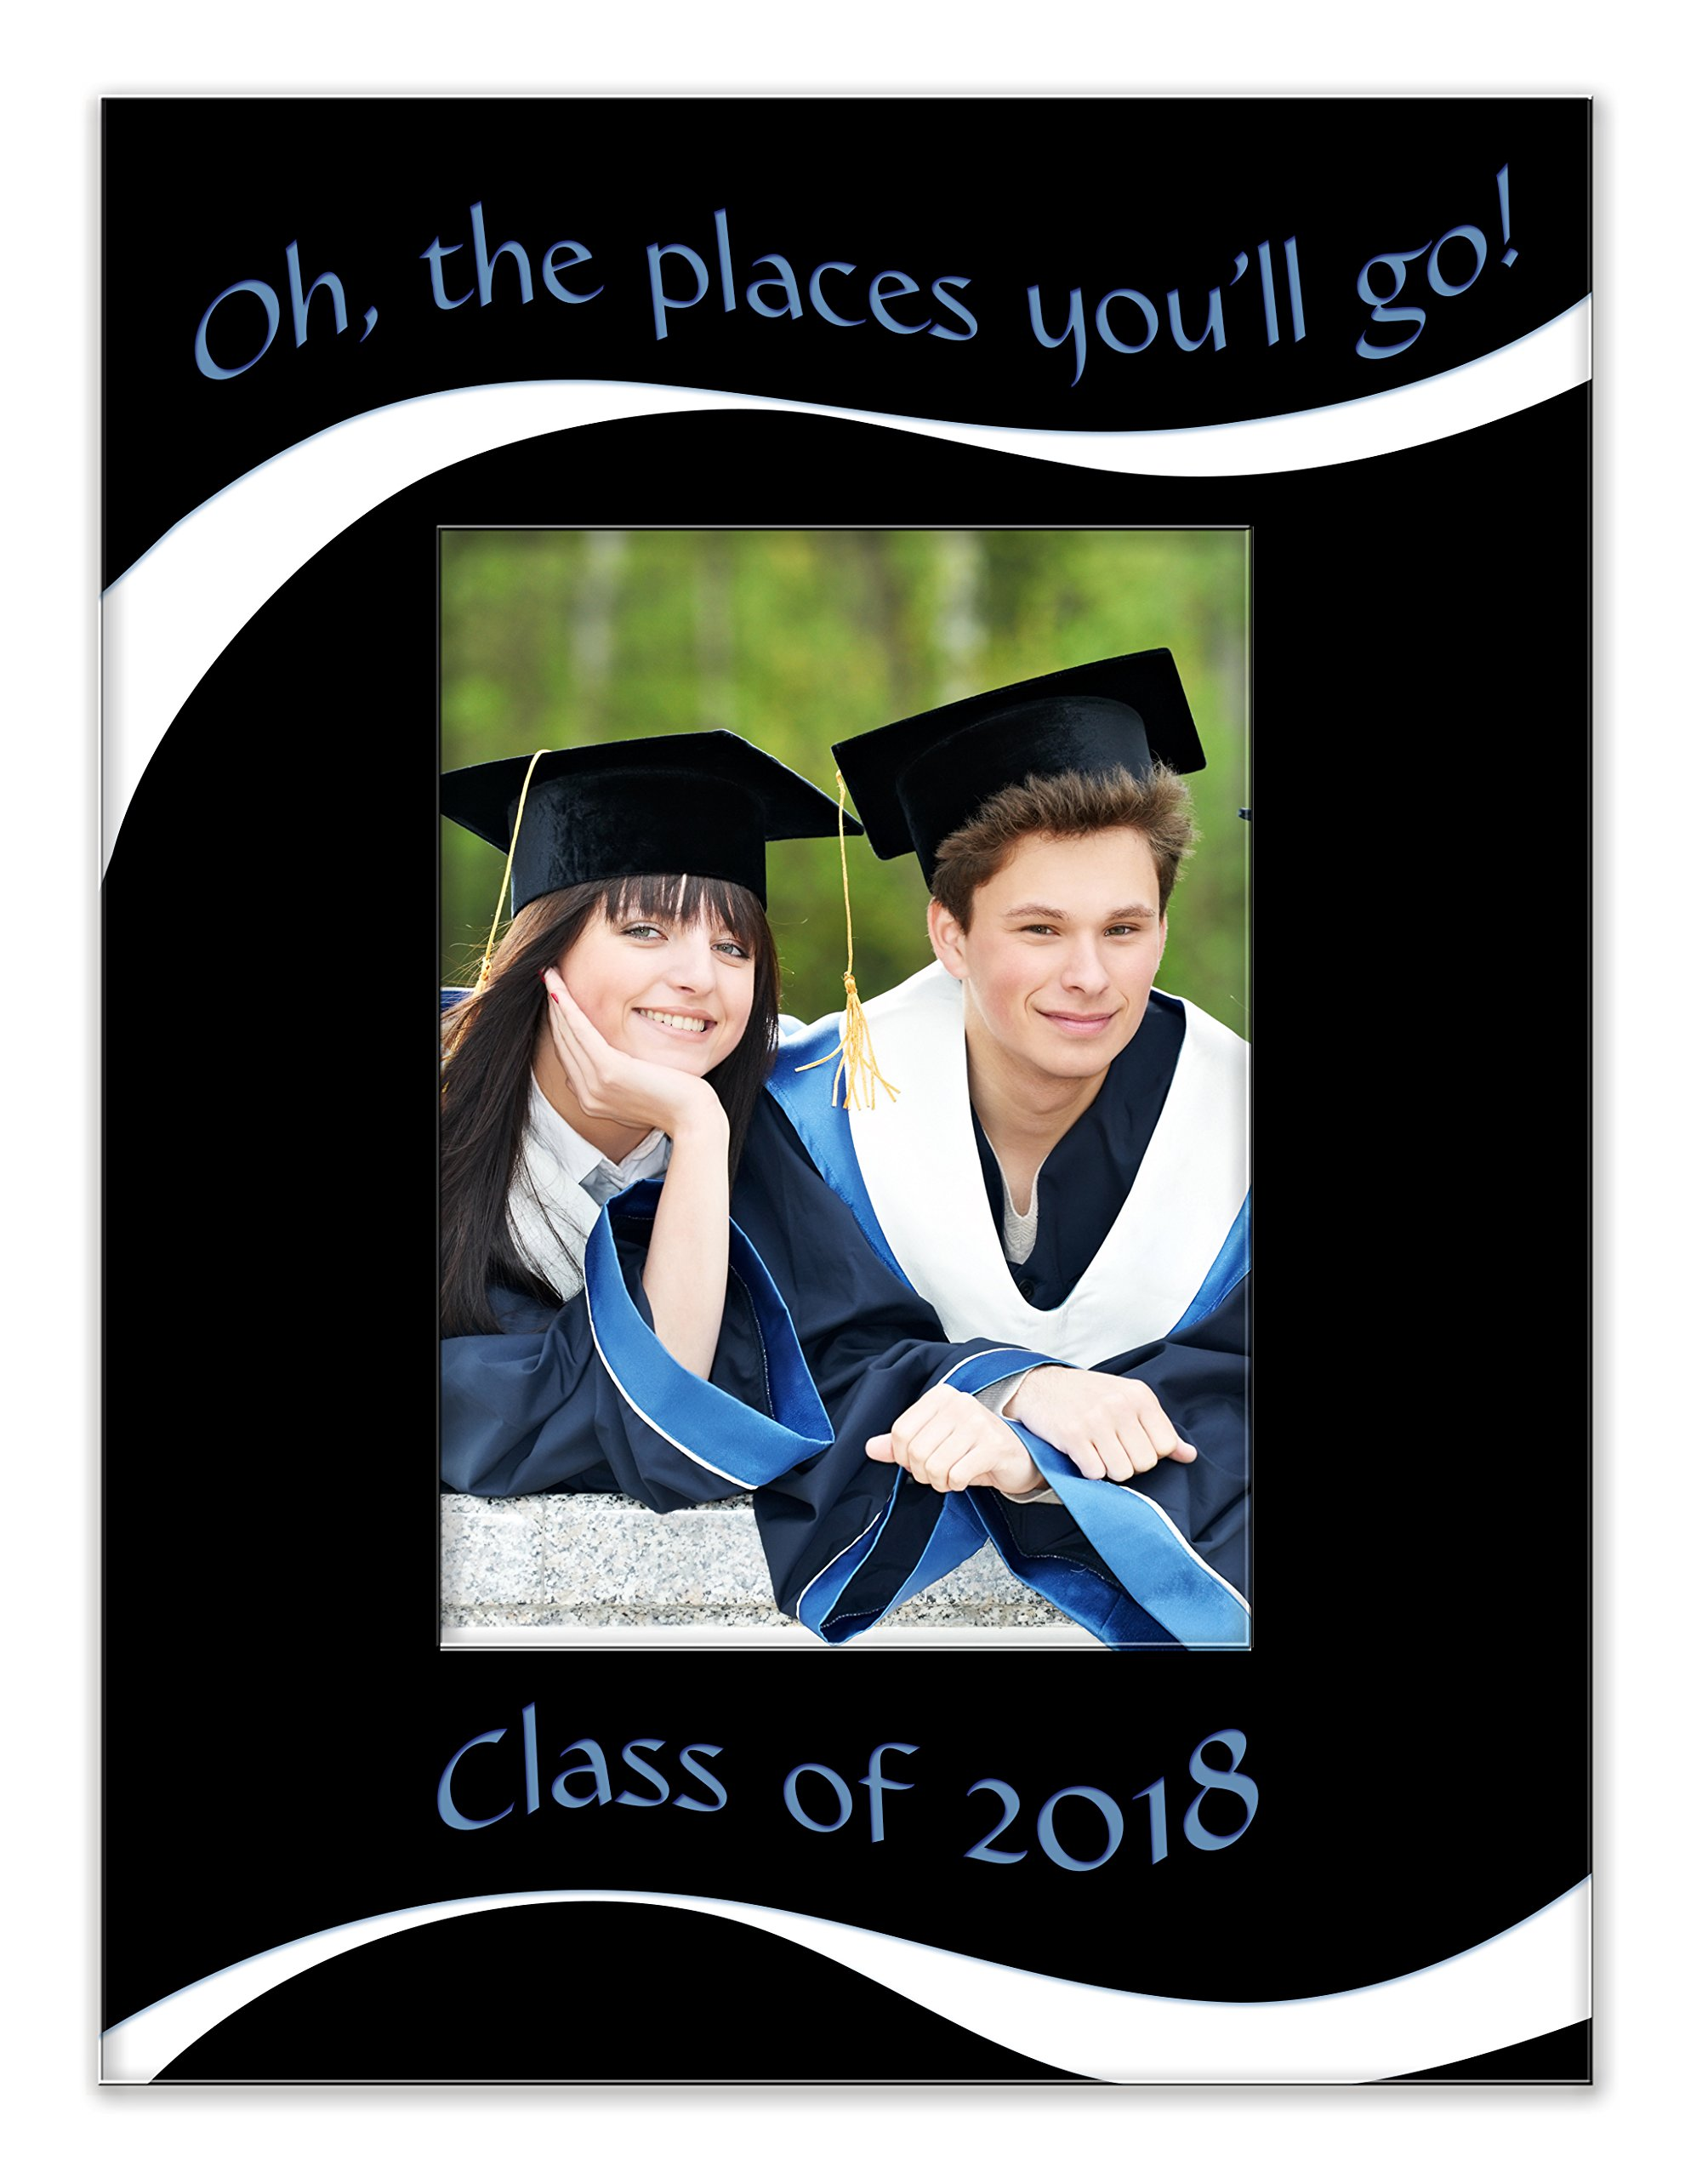 Cathedral Art MF266 Class of 2018 Graduation Frame, Black